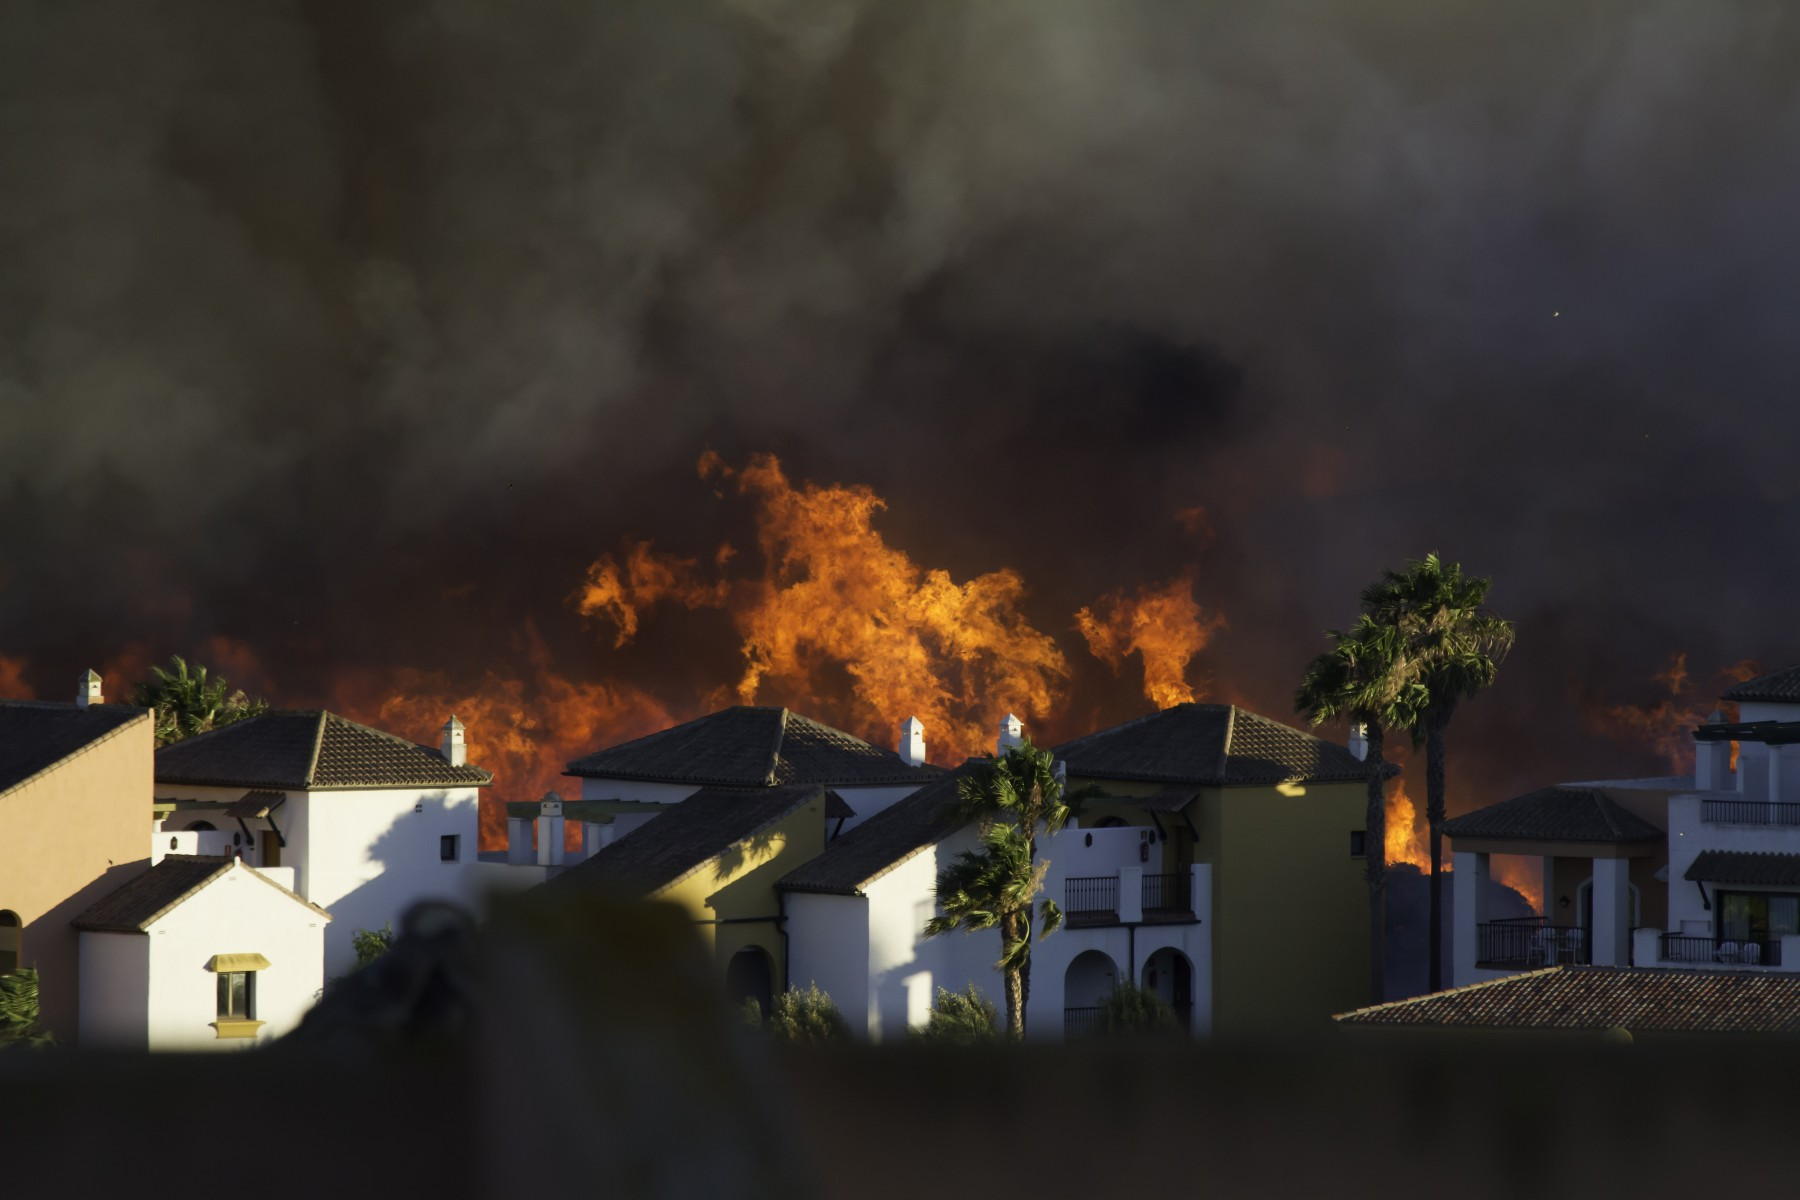 wildfire burns near homes in Spain